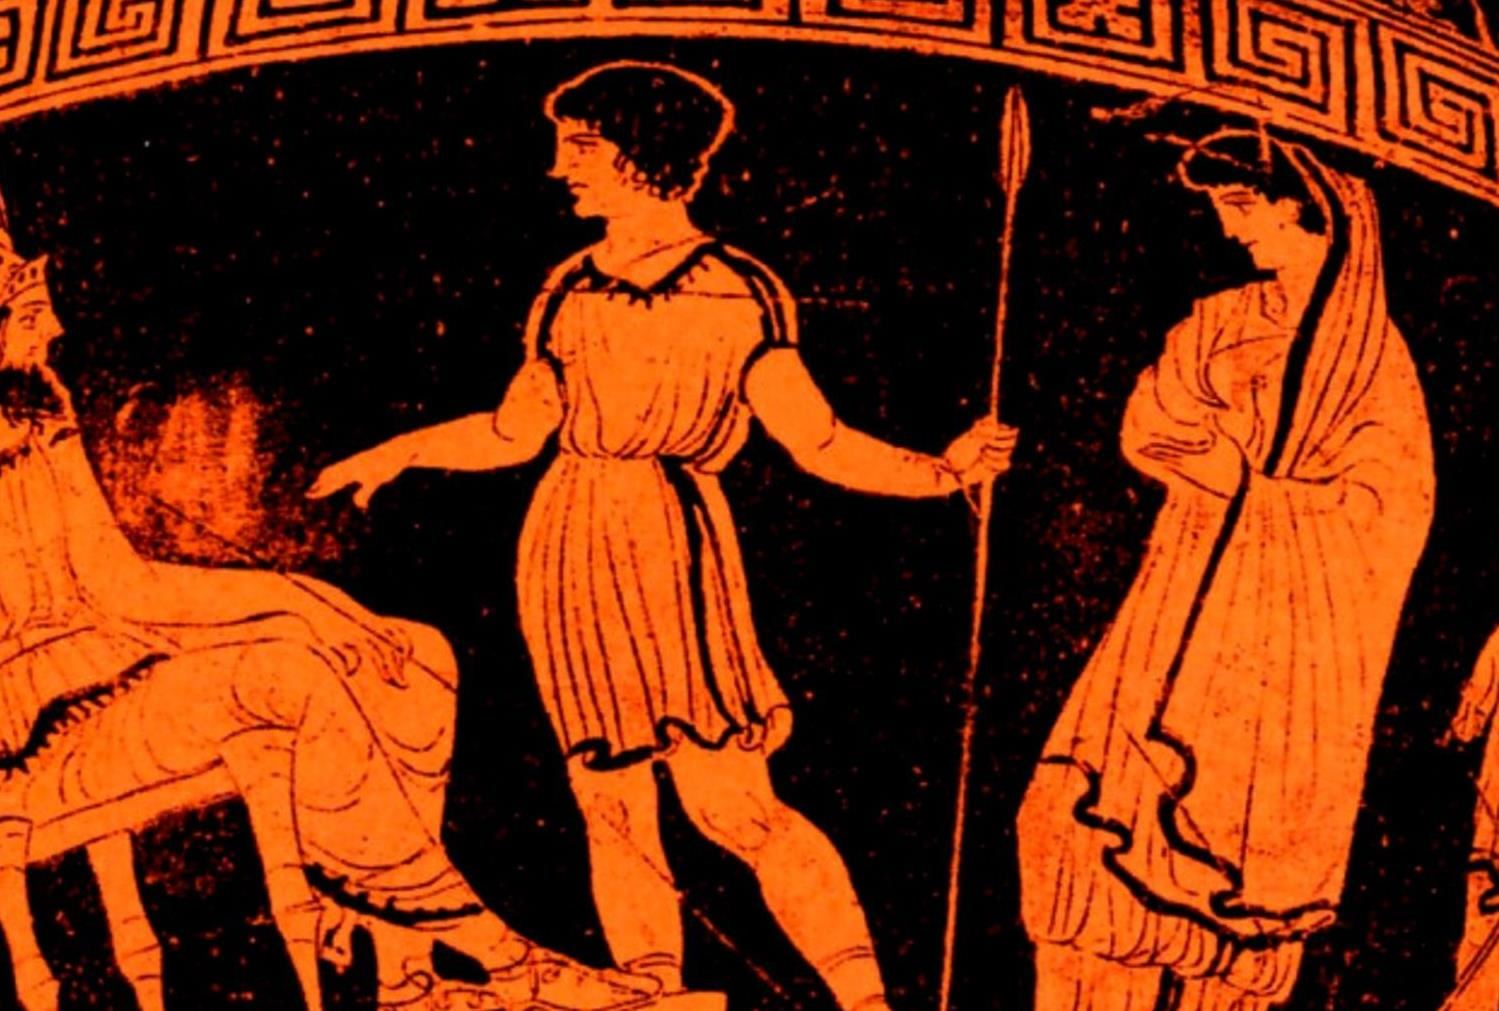 classical Greek vase with woman holding spear